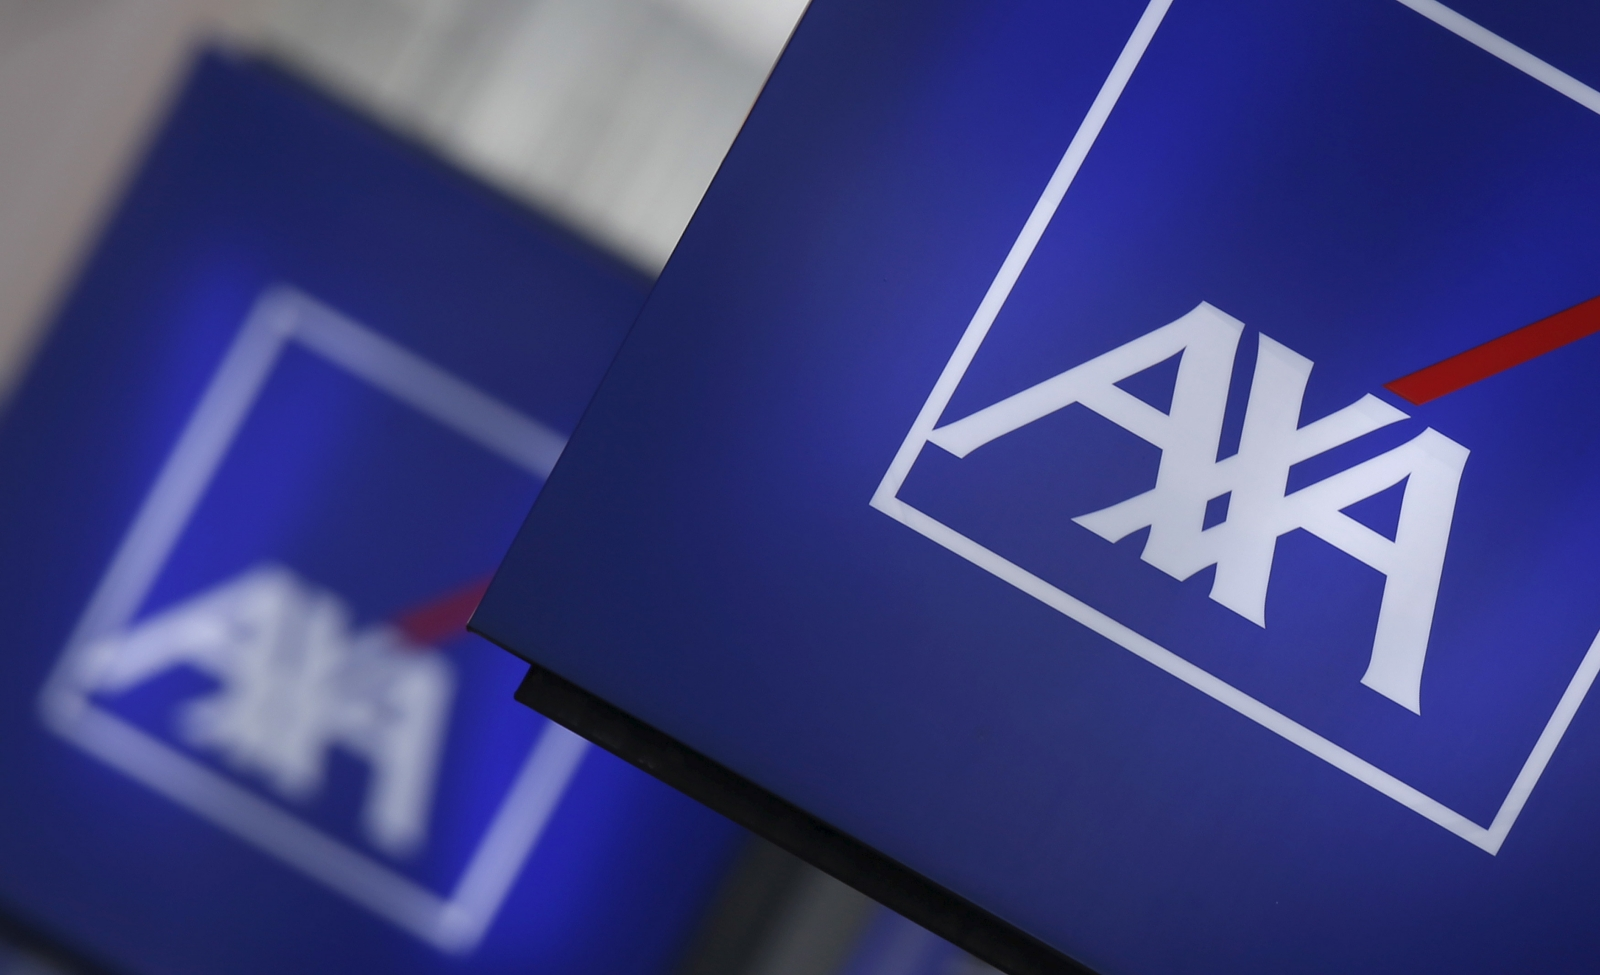 Axa UK to sell its investment, pensions and direct protection businesses to Phoenix Group for £375m